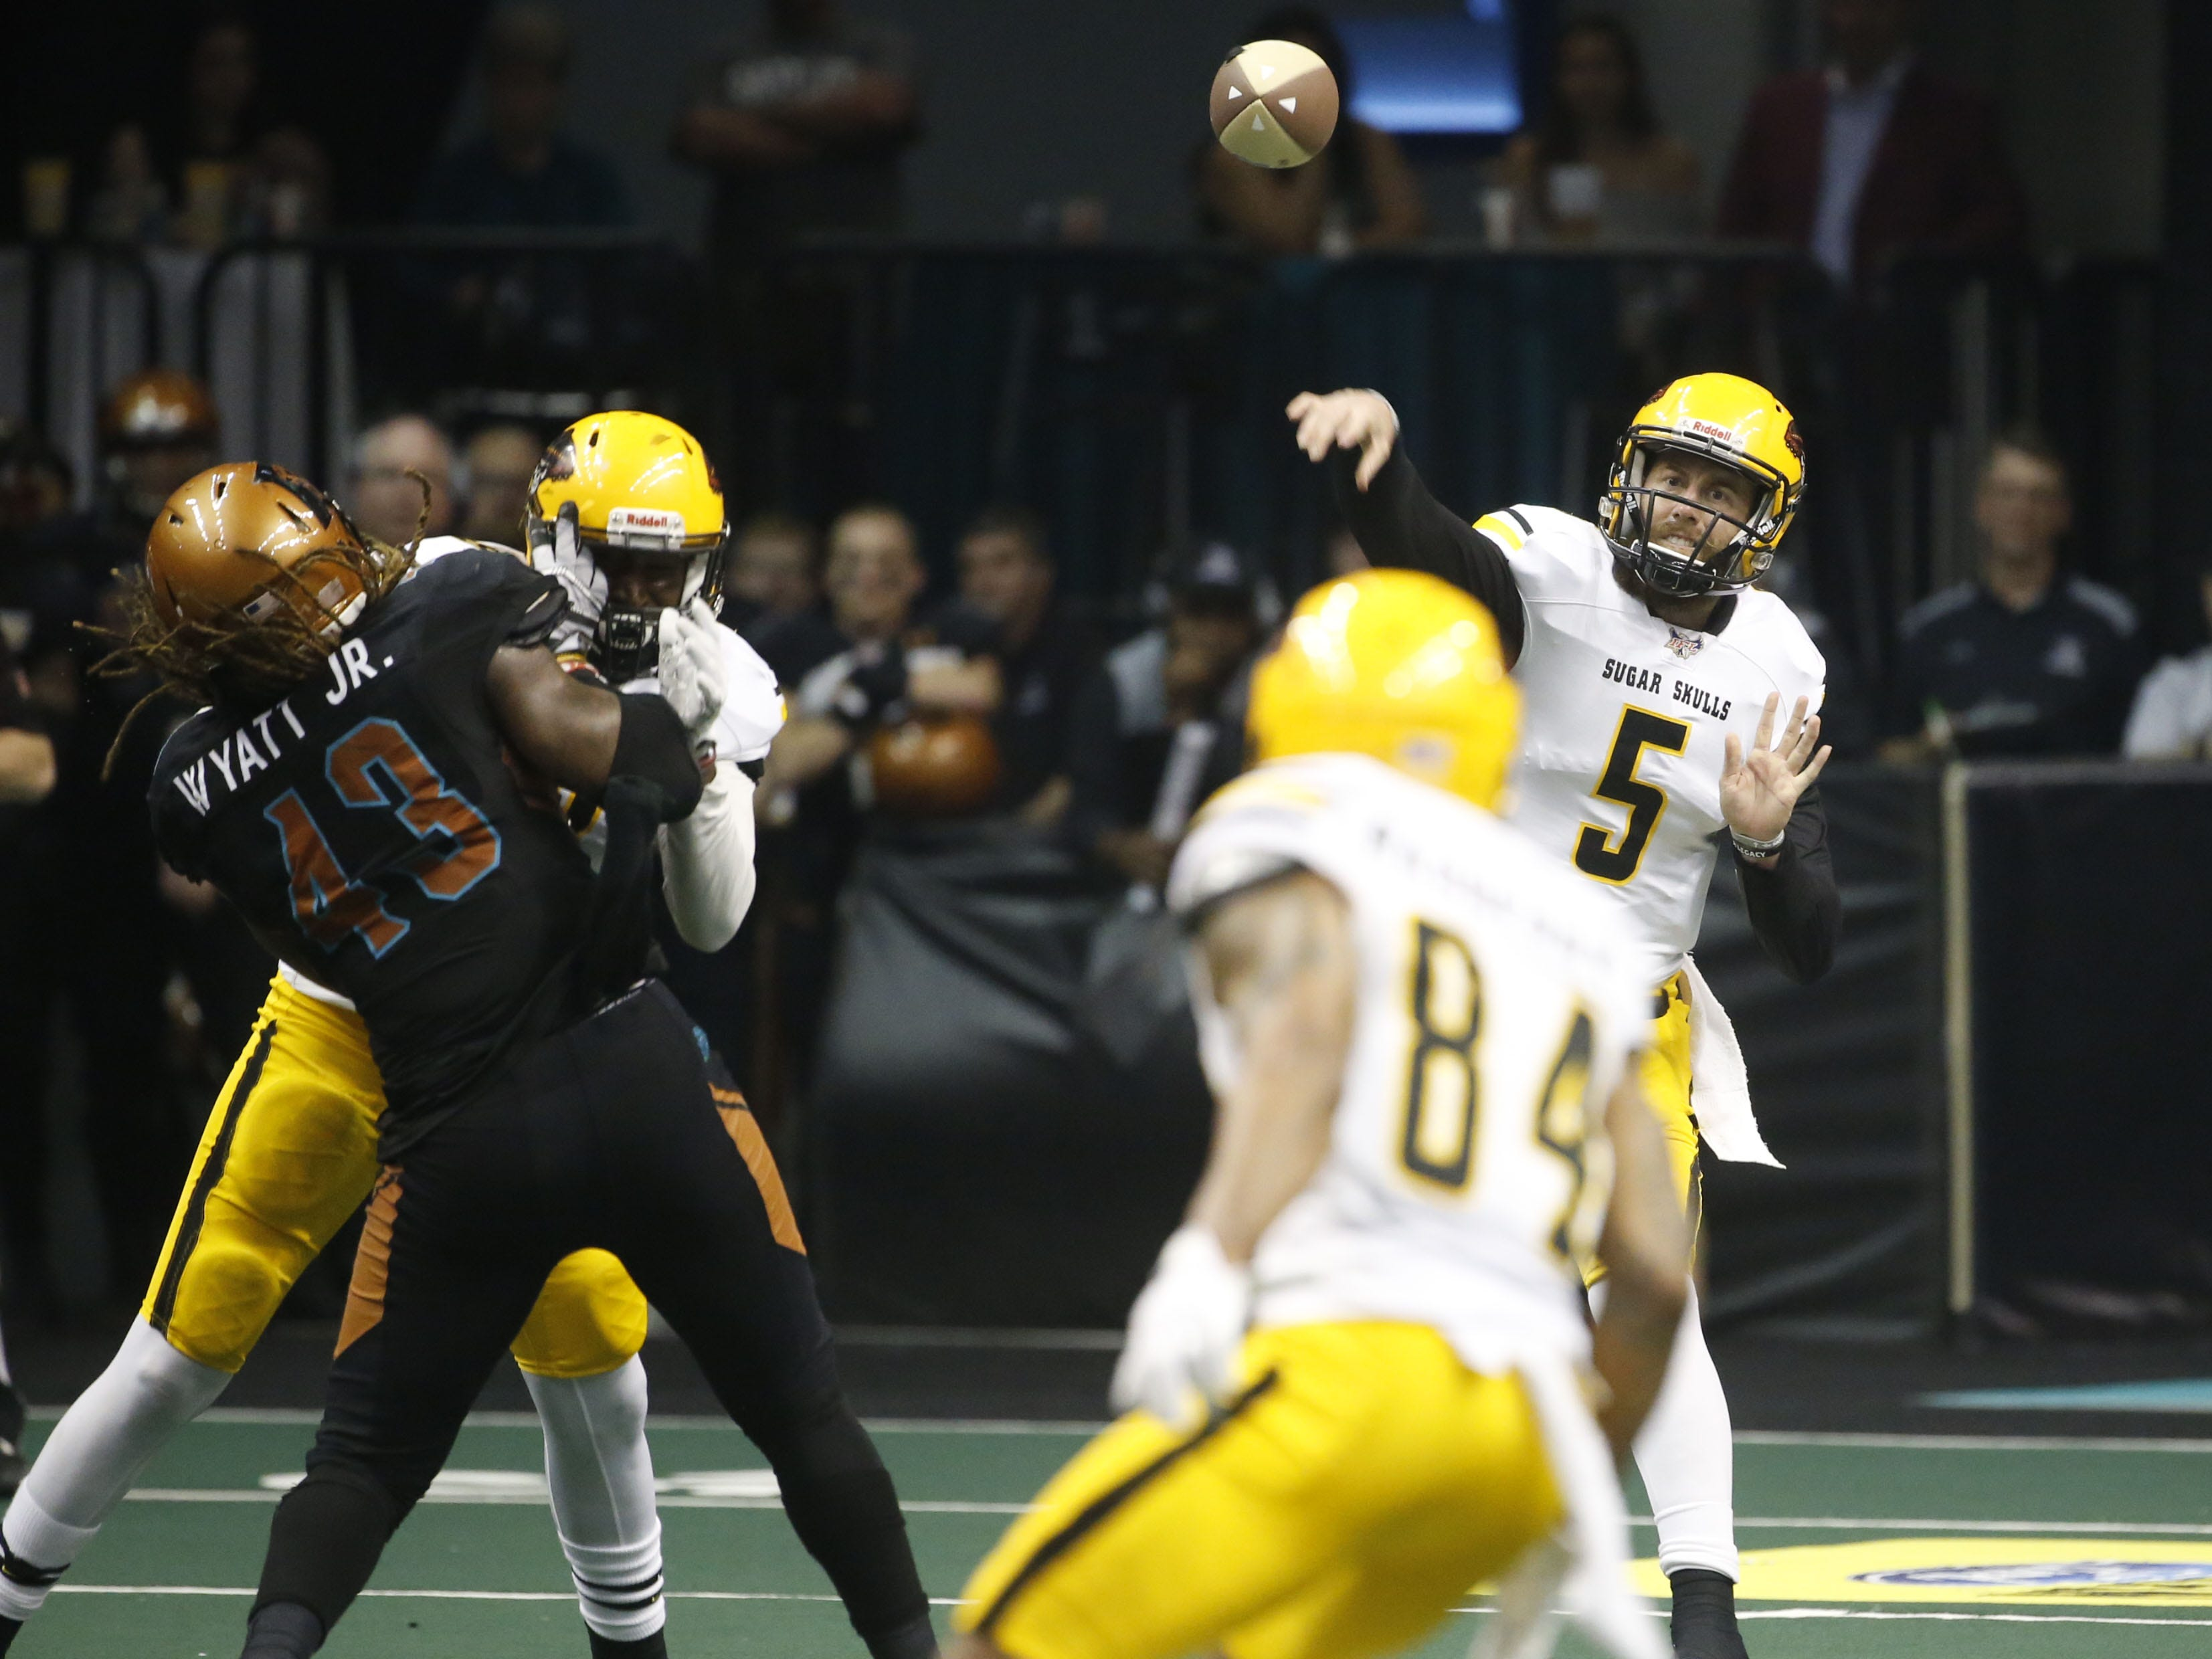 Sugar Skulls Jake Medlock (5) throws a pass against the Rattlers during the second half at Talking Stick Resort Arena in Phoenix, Ariz. on March 16, 2019.